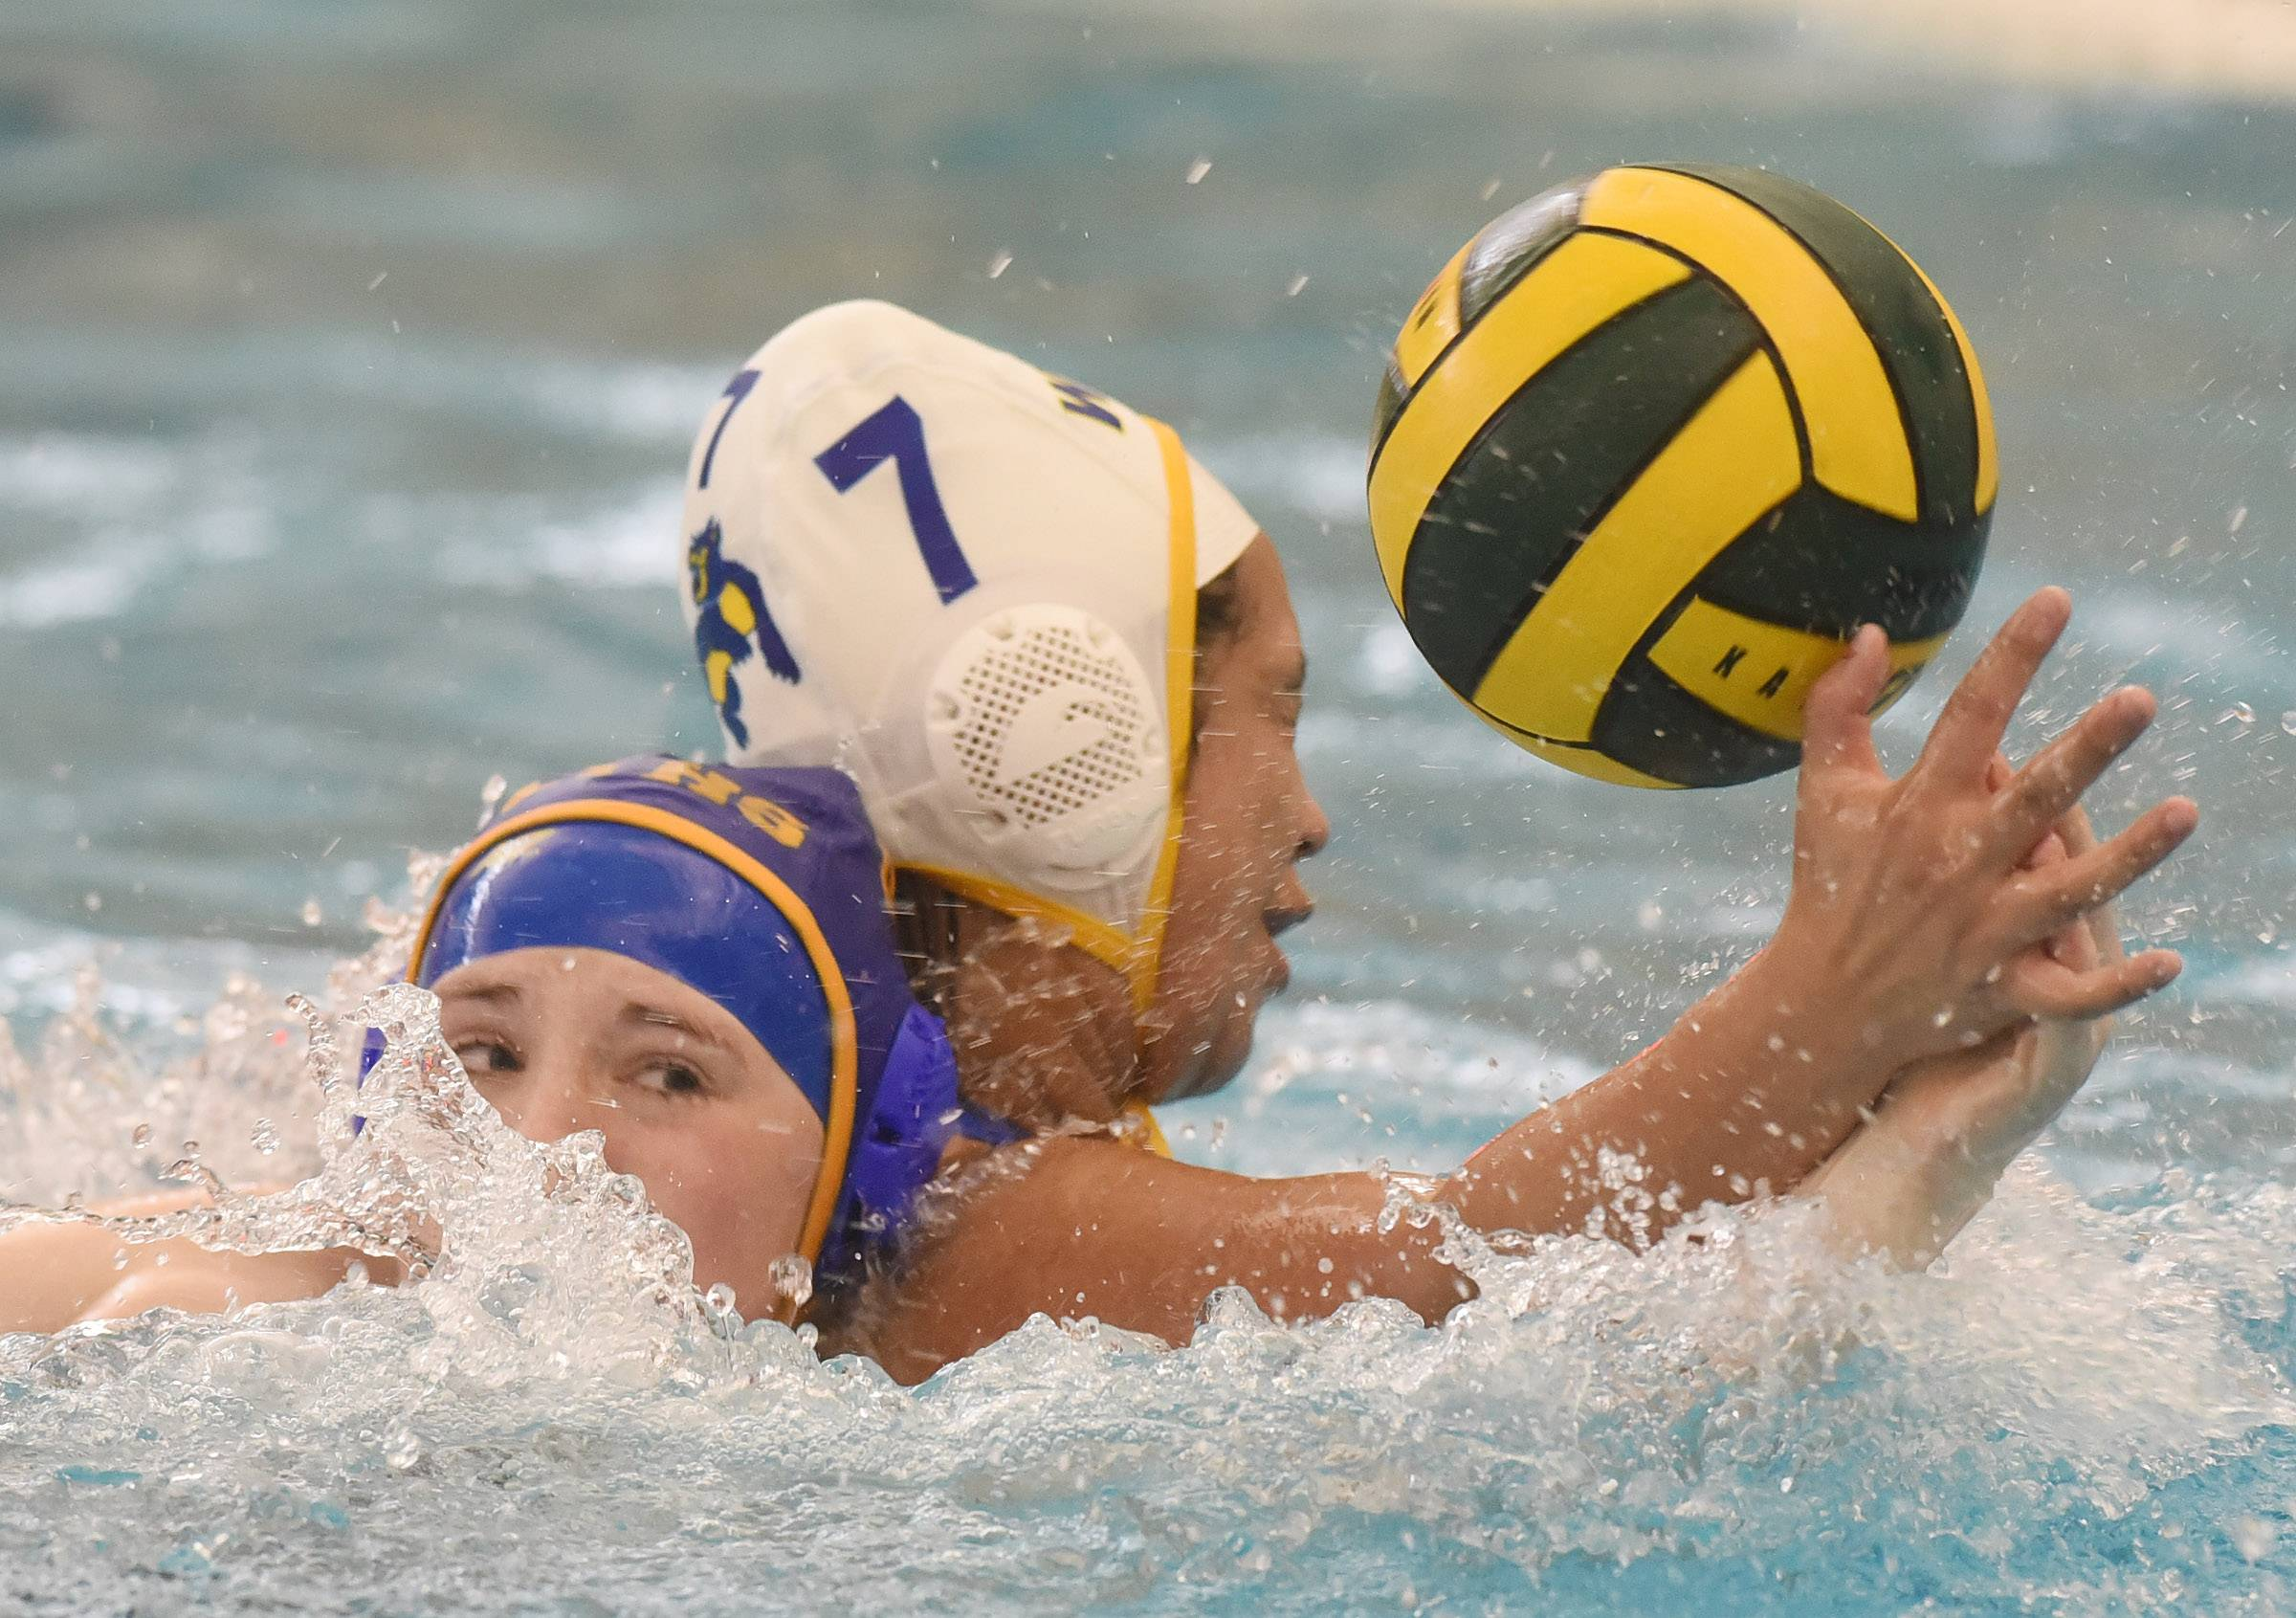 Wheeling's Argelina Diaz, right, breaks up a Lyons' pass in front of the goal during Saturday's quad at Stevenson.